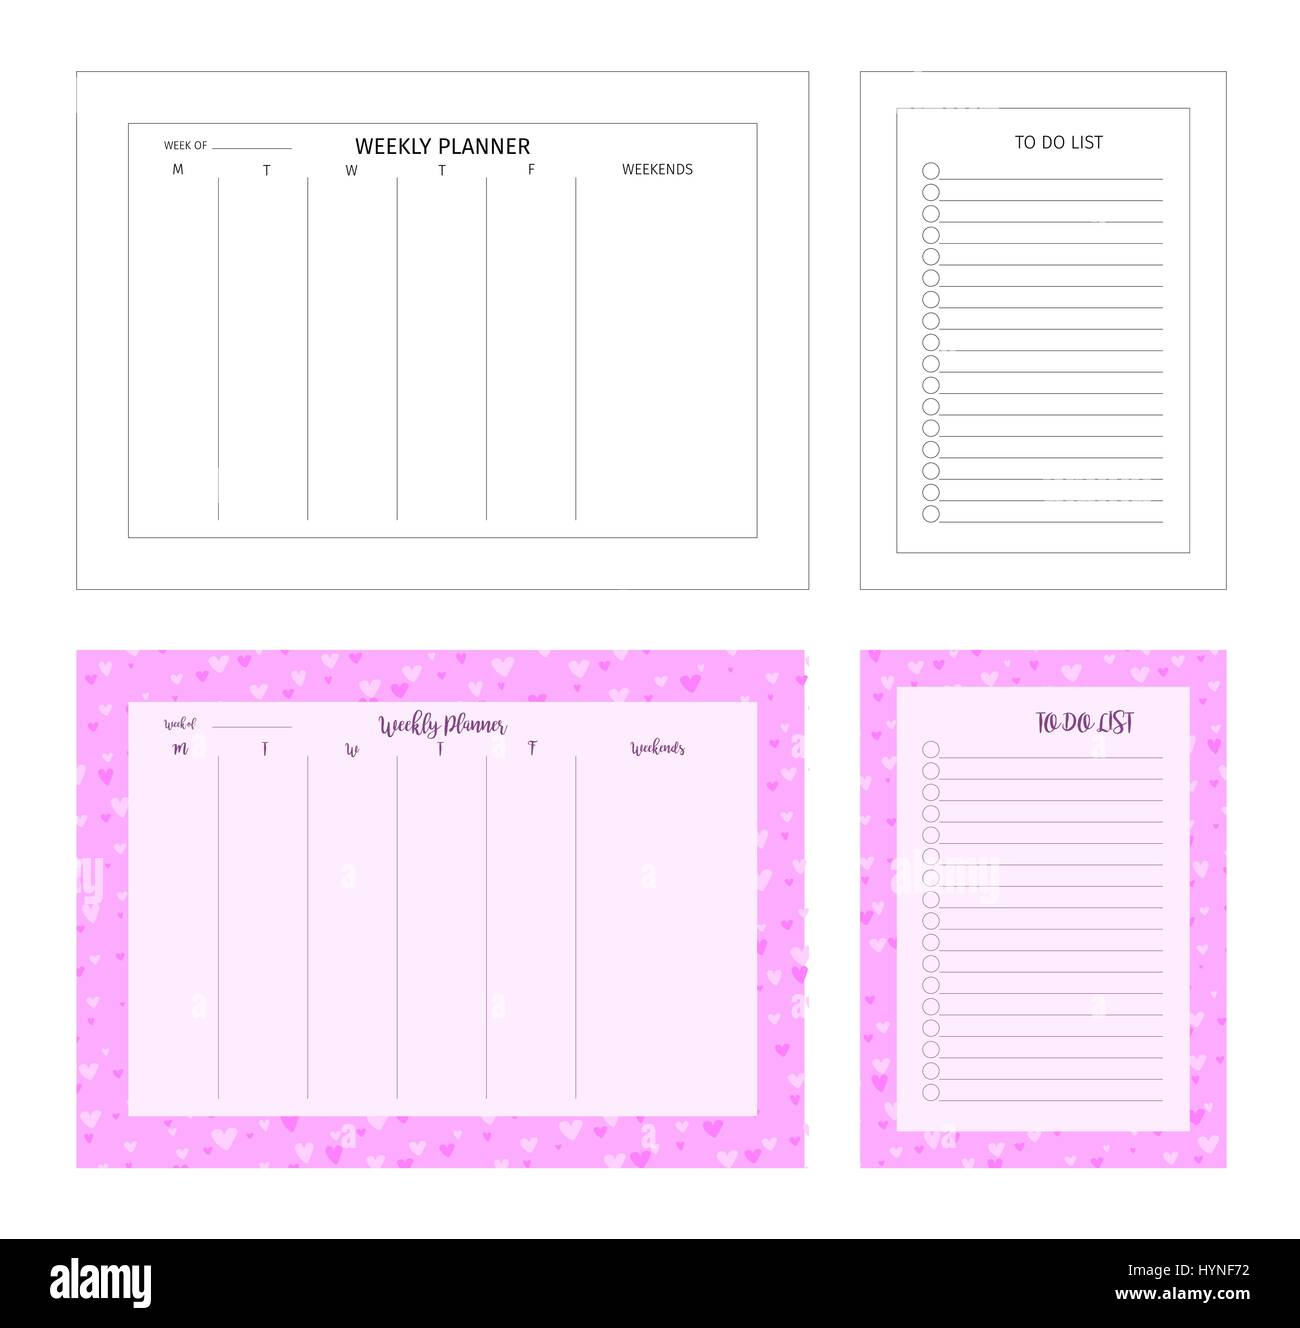 temlape for print. weekly planner and to do list. patterned frame